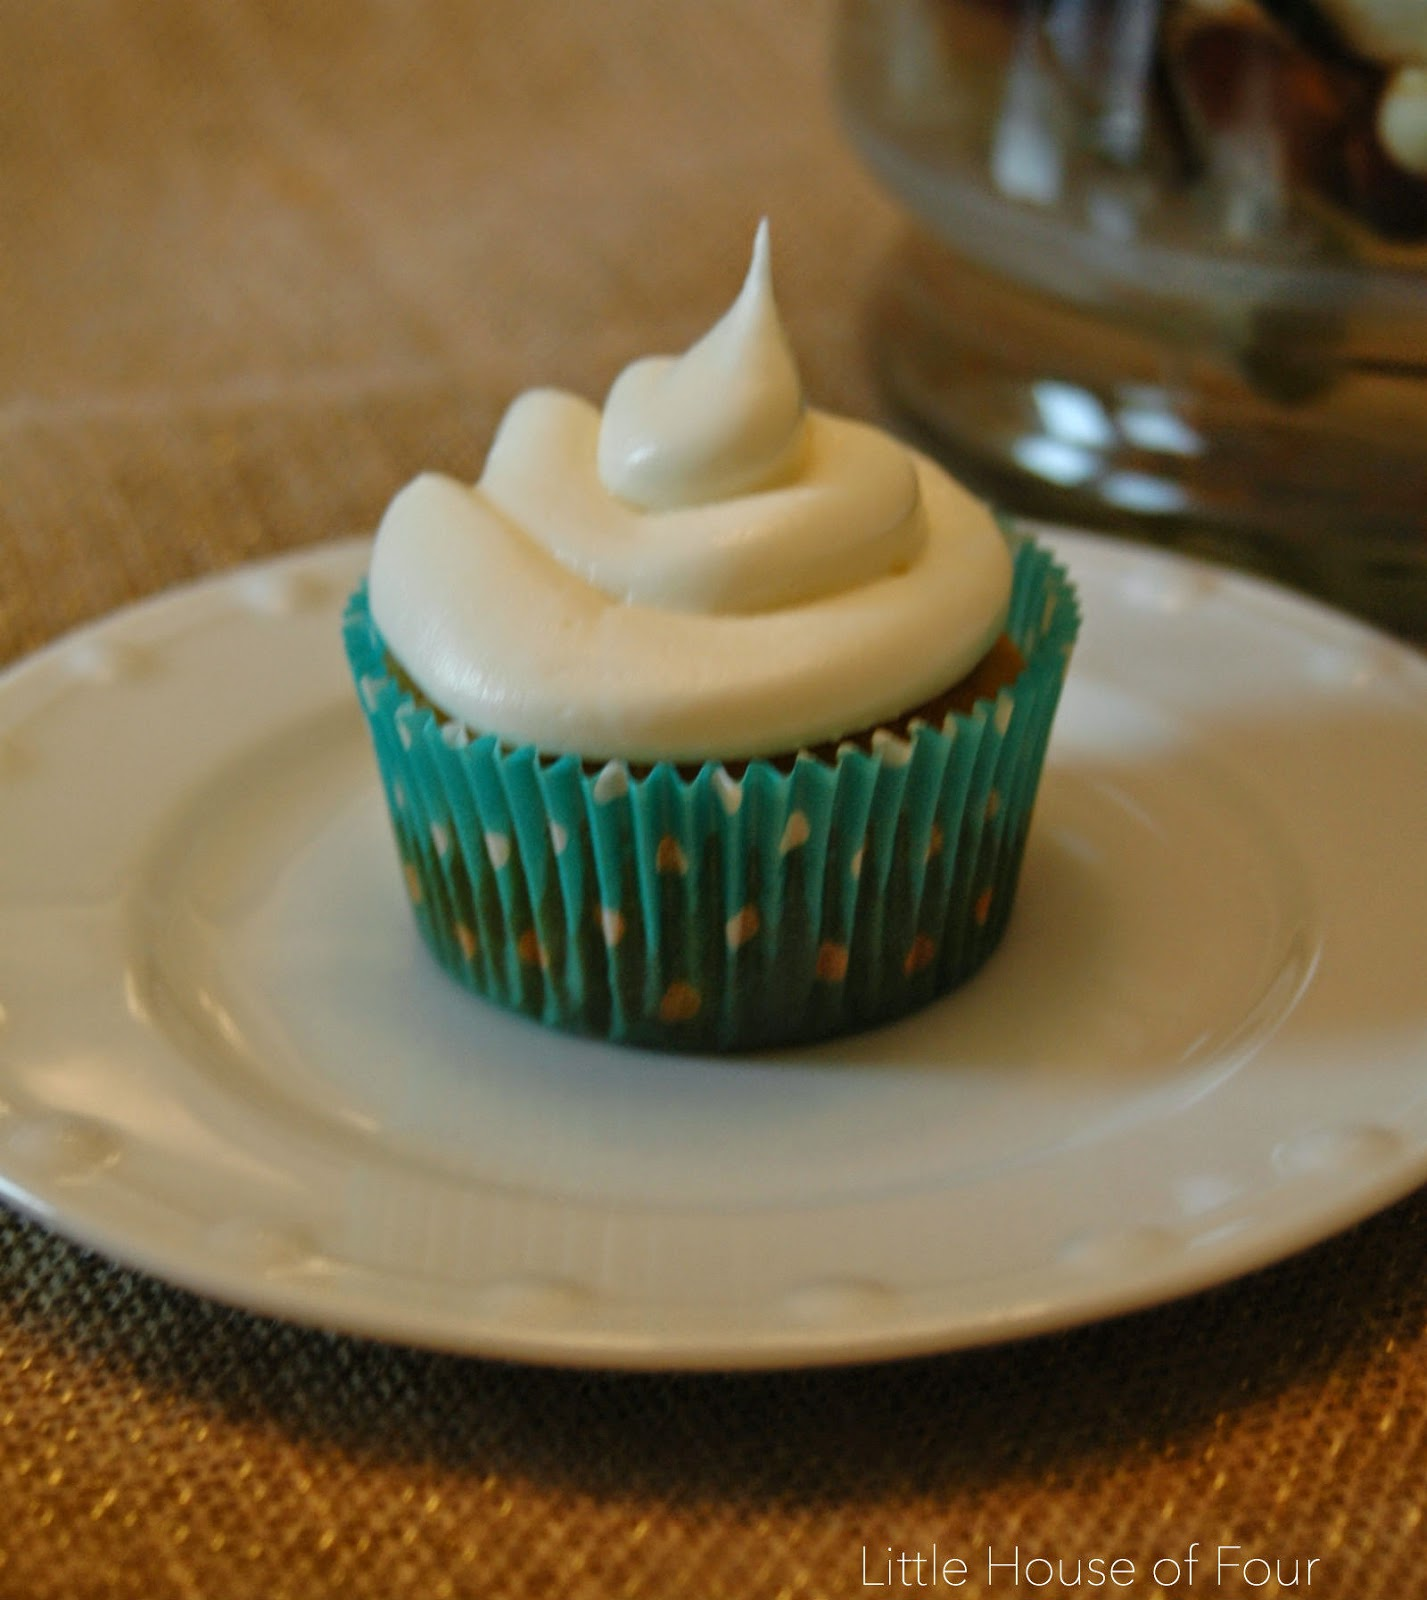 ... House of Four: Sweet Potato Cupcakes with Maple Cream Cheese Icing